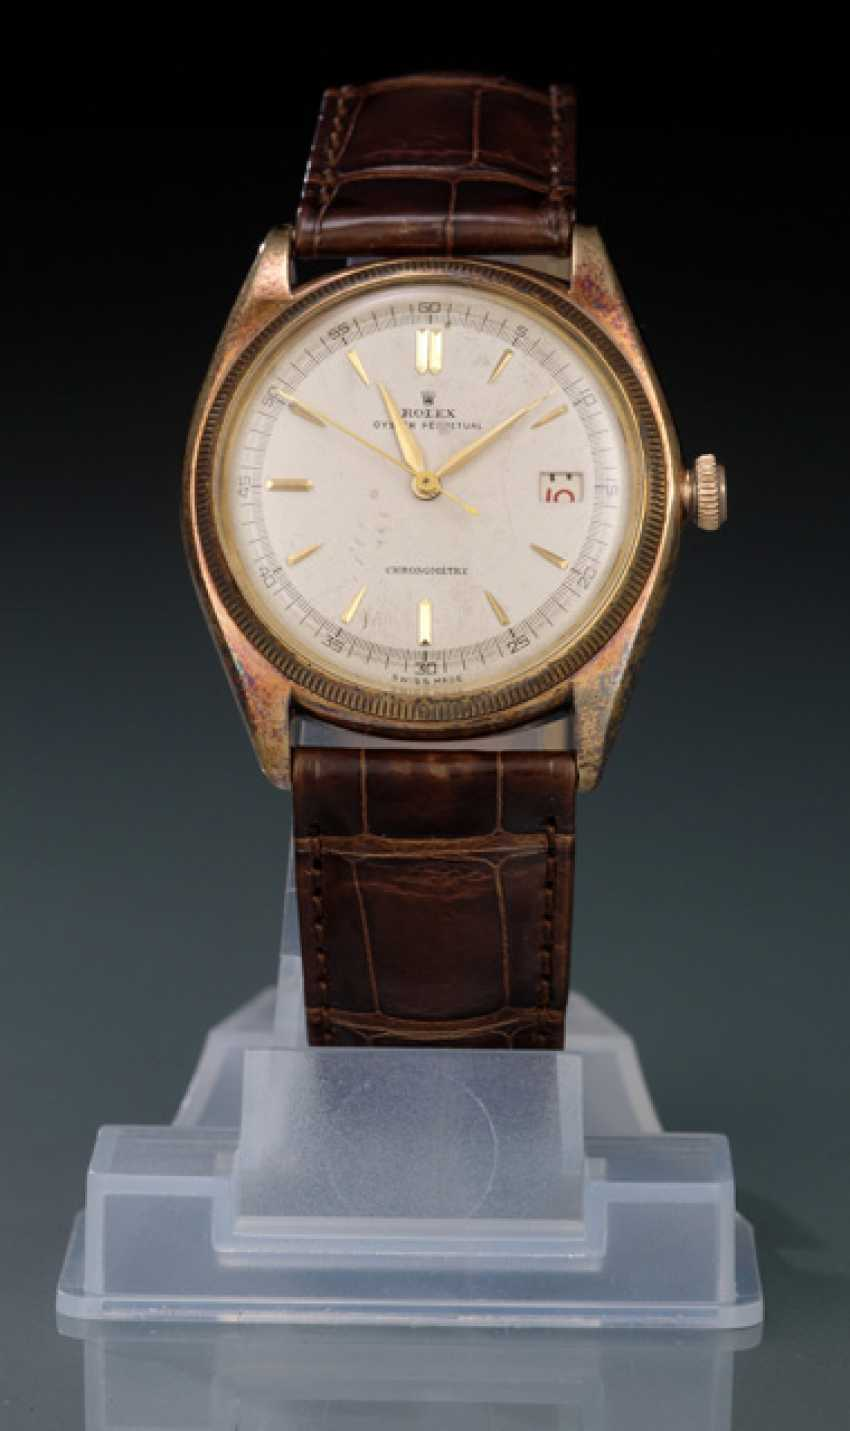 Rolex Oyster Perpetual Ref. 6105 Bubble Back - photo 1